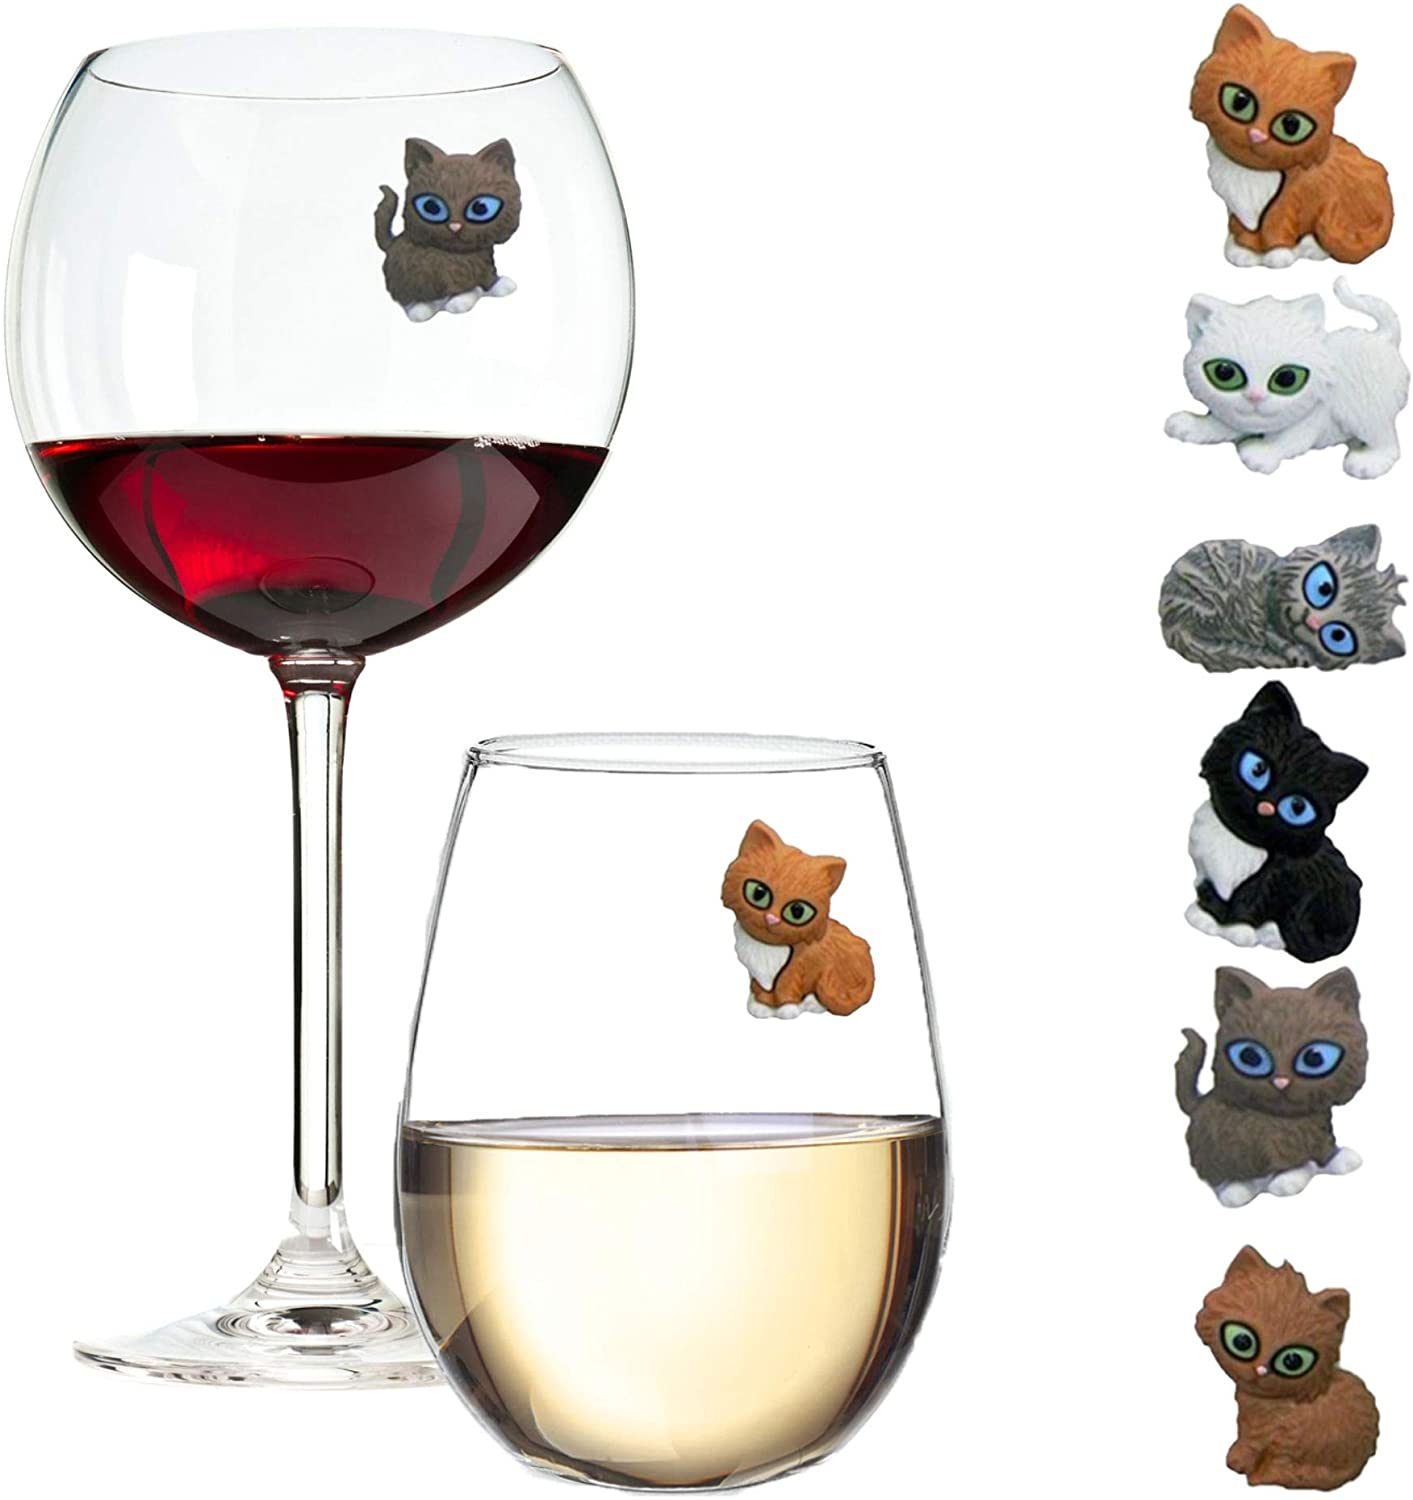 Simply Charmed Cat Wine Charms or Drink Glass Markers - Magnetic - Great Birthday or Hostess Gift for Cat Lovers - Set of 6 Cute Kitty Glass Identifiers